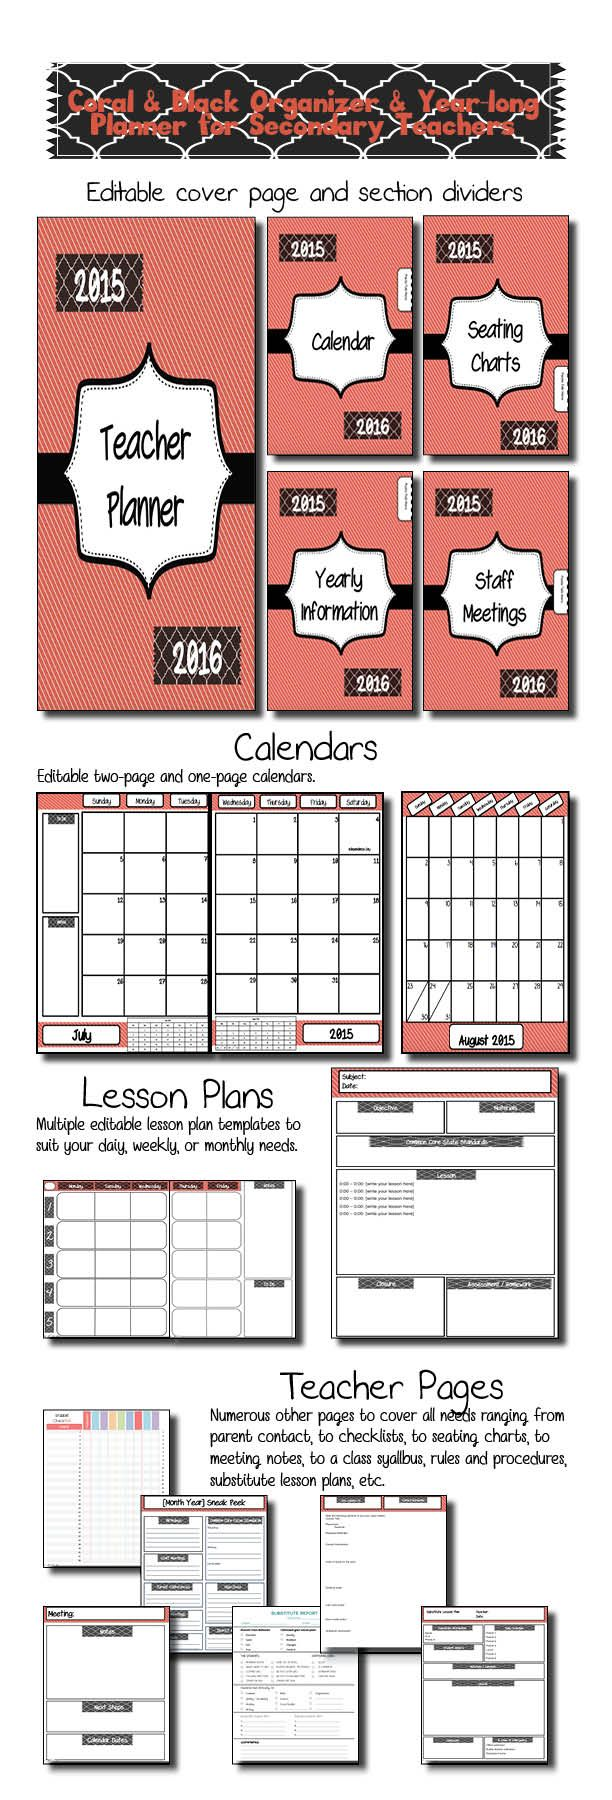 This beautiful coral and black classroom organizer is just what secondary teachers need to get prepared in style for the new school year!  I have taught middle school for 15 years and I included the templates for every resource I have found I cannot live without and eliminated all of the excess that looks pretty in other organizers but never gets filled out or updated past the third week of school.  This product is EDITABLE in the form of PowerPoint so you can customize your pages!